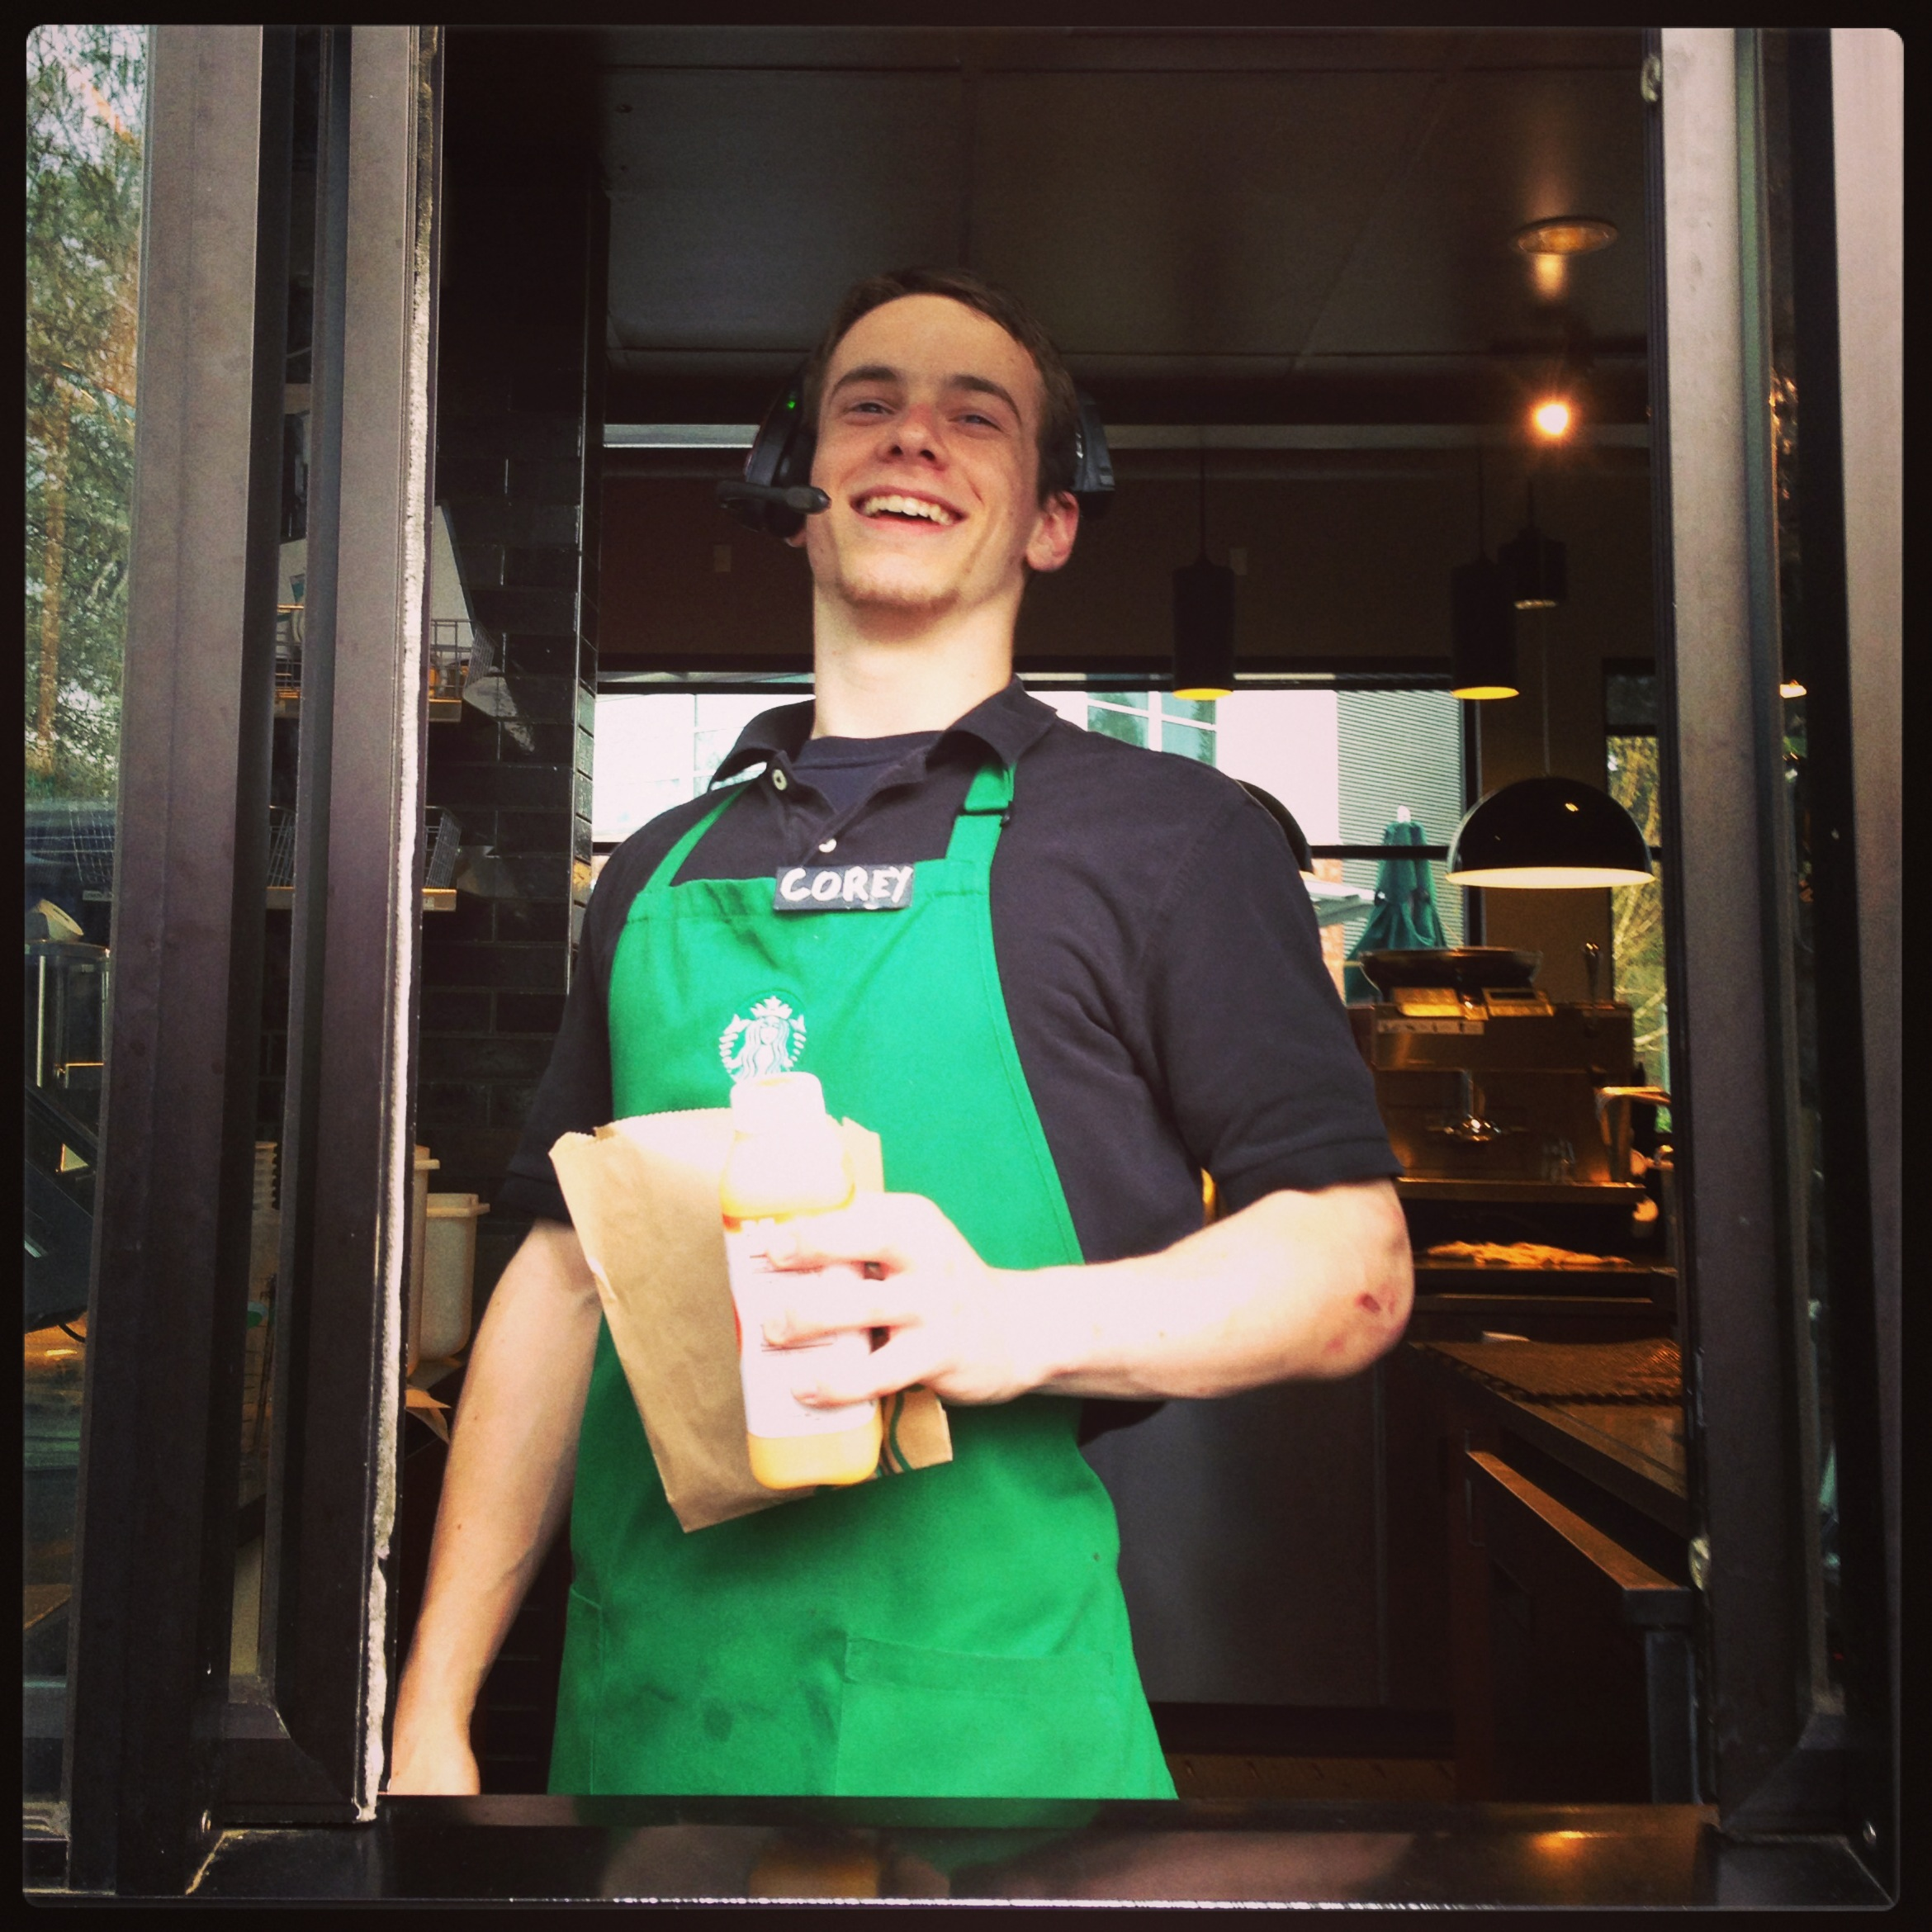 Starbucks partner Corey